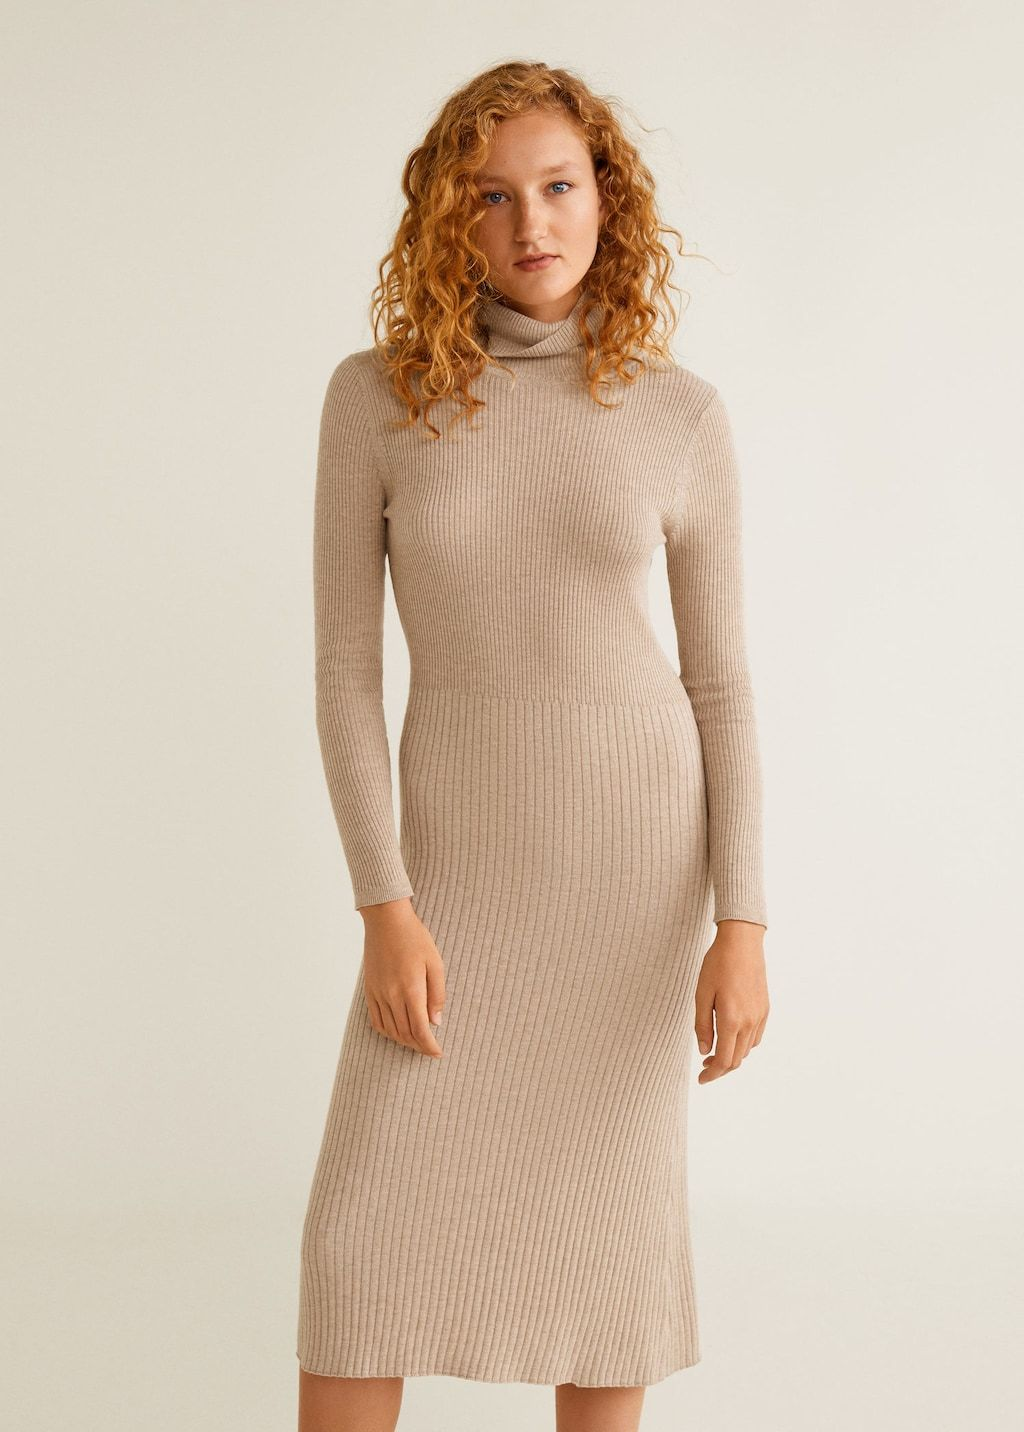 4f74b6f91f0 Ribbed midi dress - Women in 2019